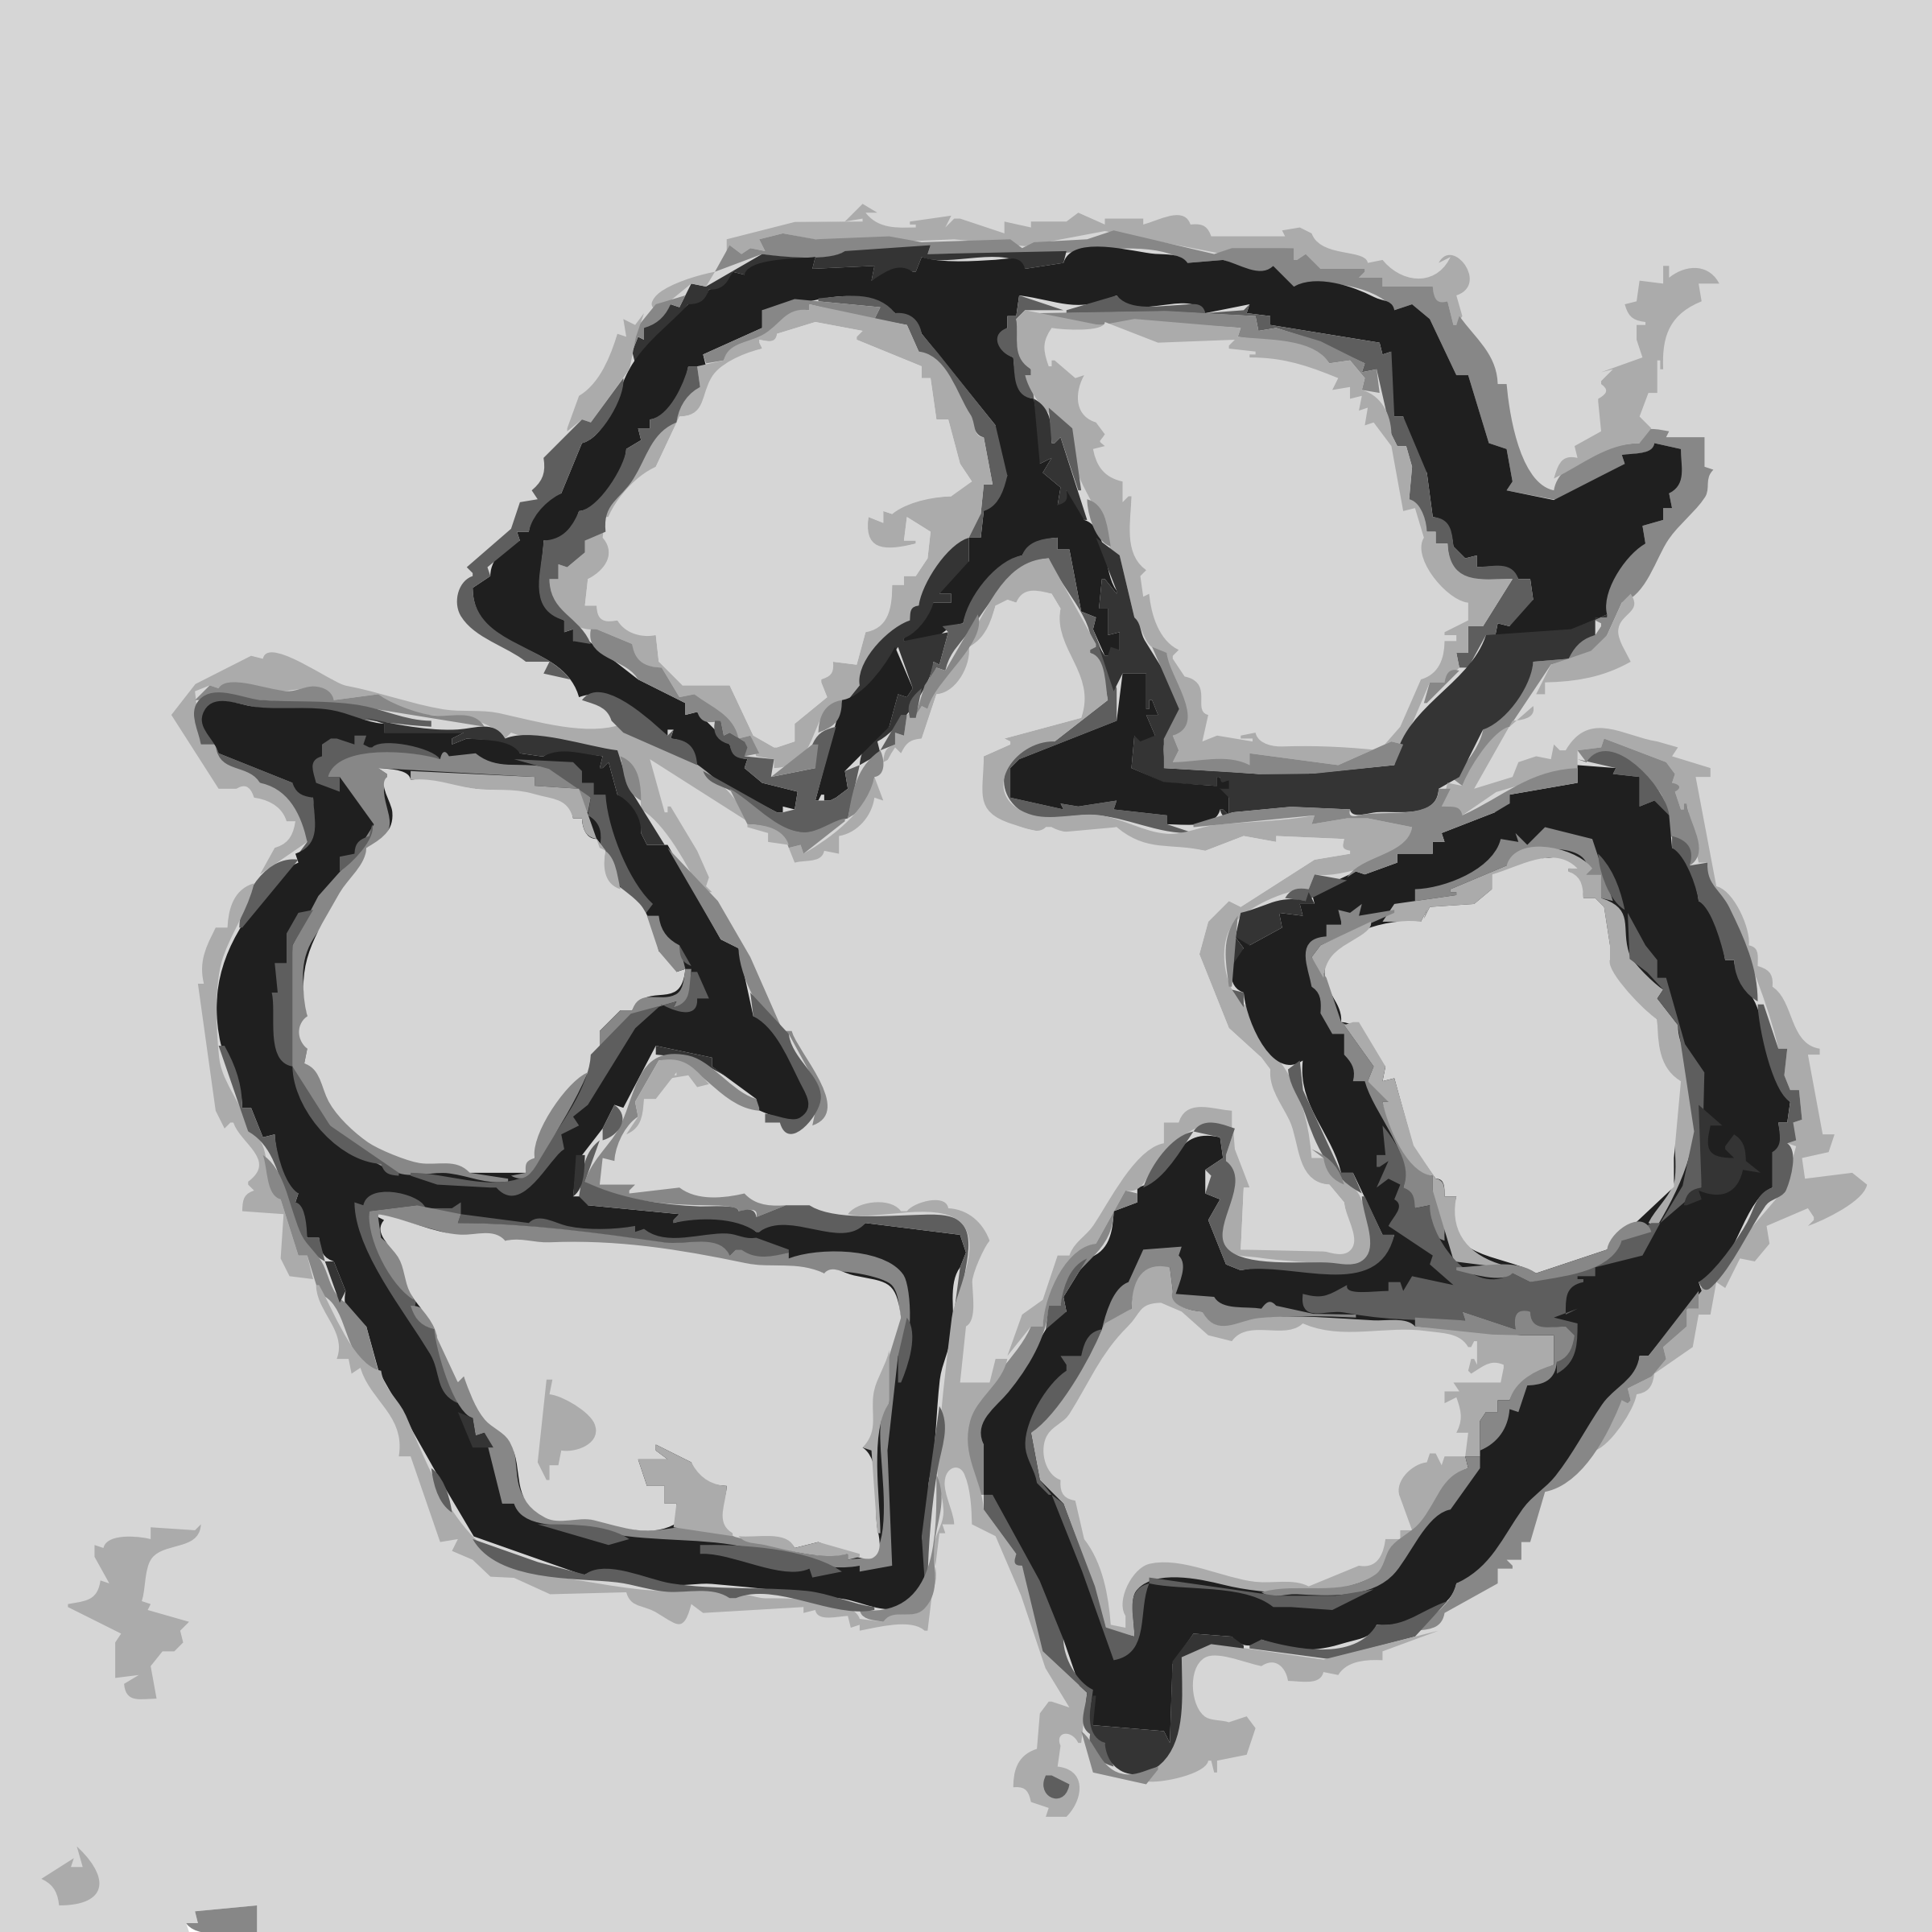 The recycle icon by rejon